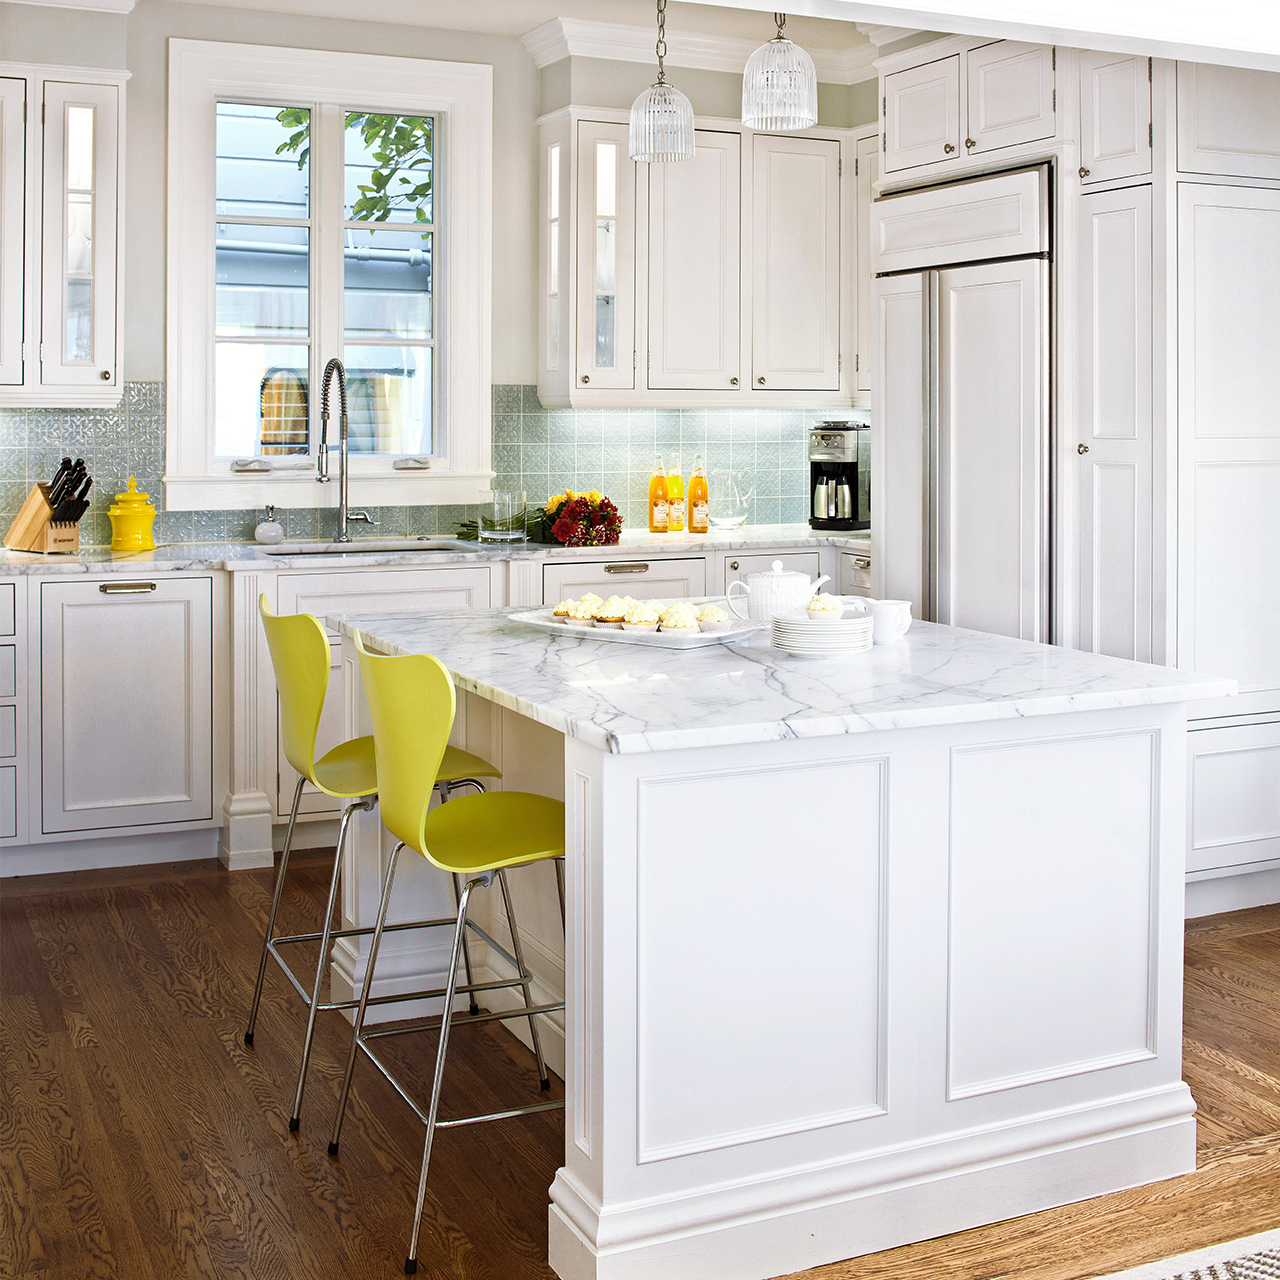 Petite Table De Cuisine Blanche: Make A Small Kitchen Look Larger